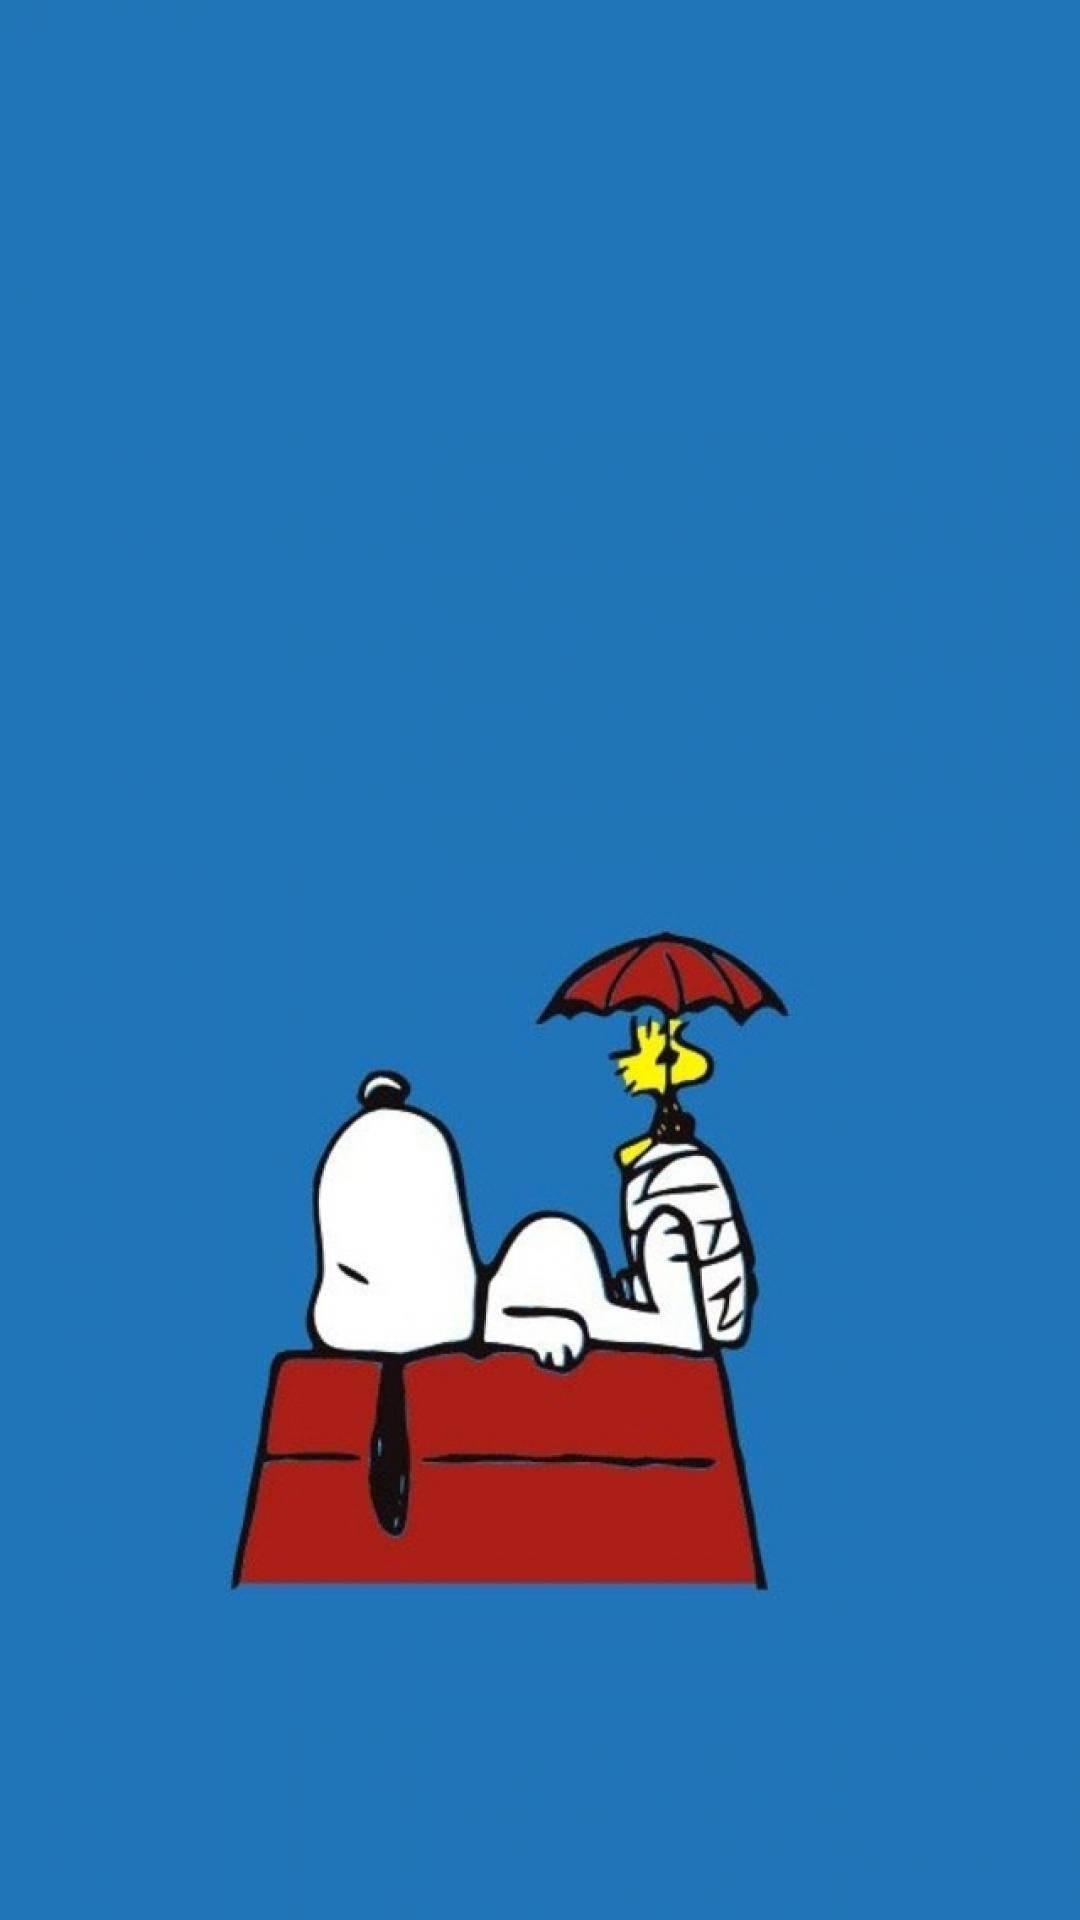 iphone 6 retina wallpaper Snoopy wallpaper, Snoopy